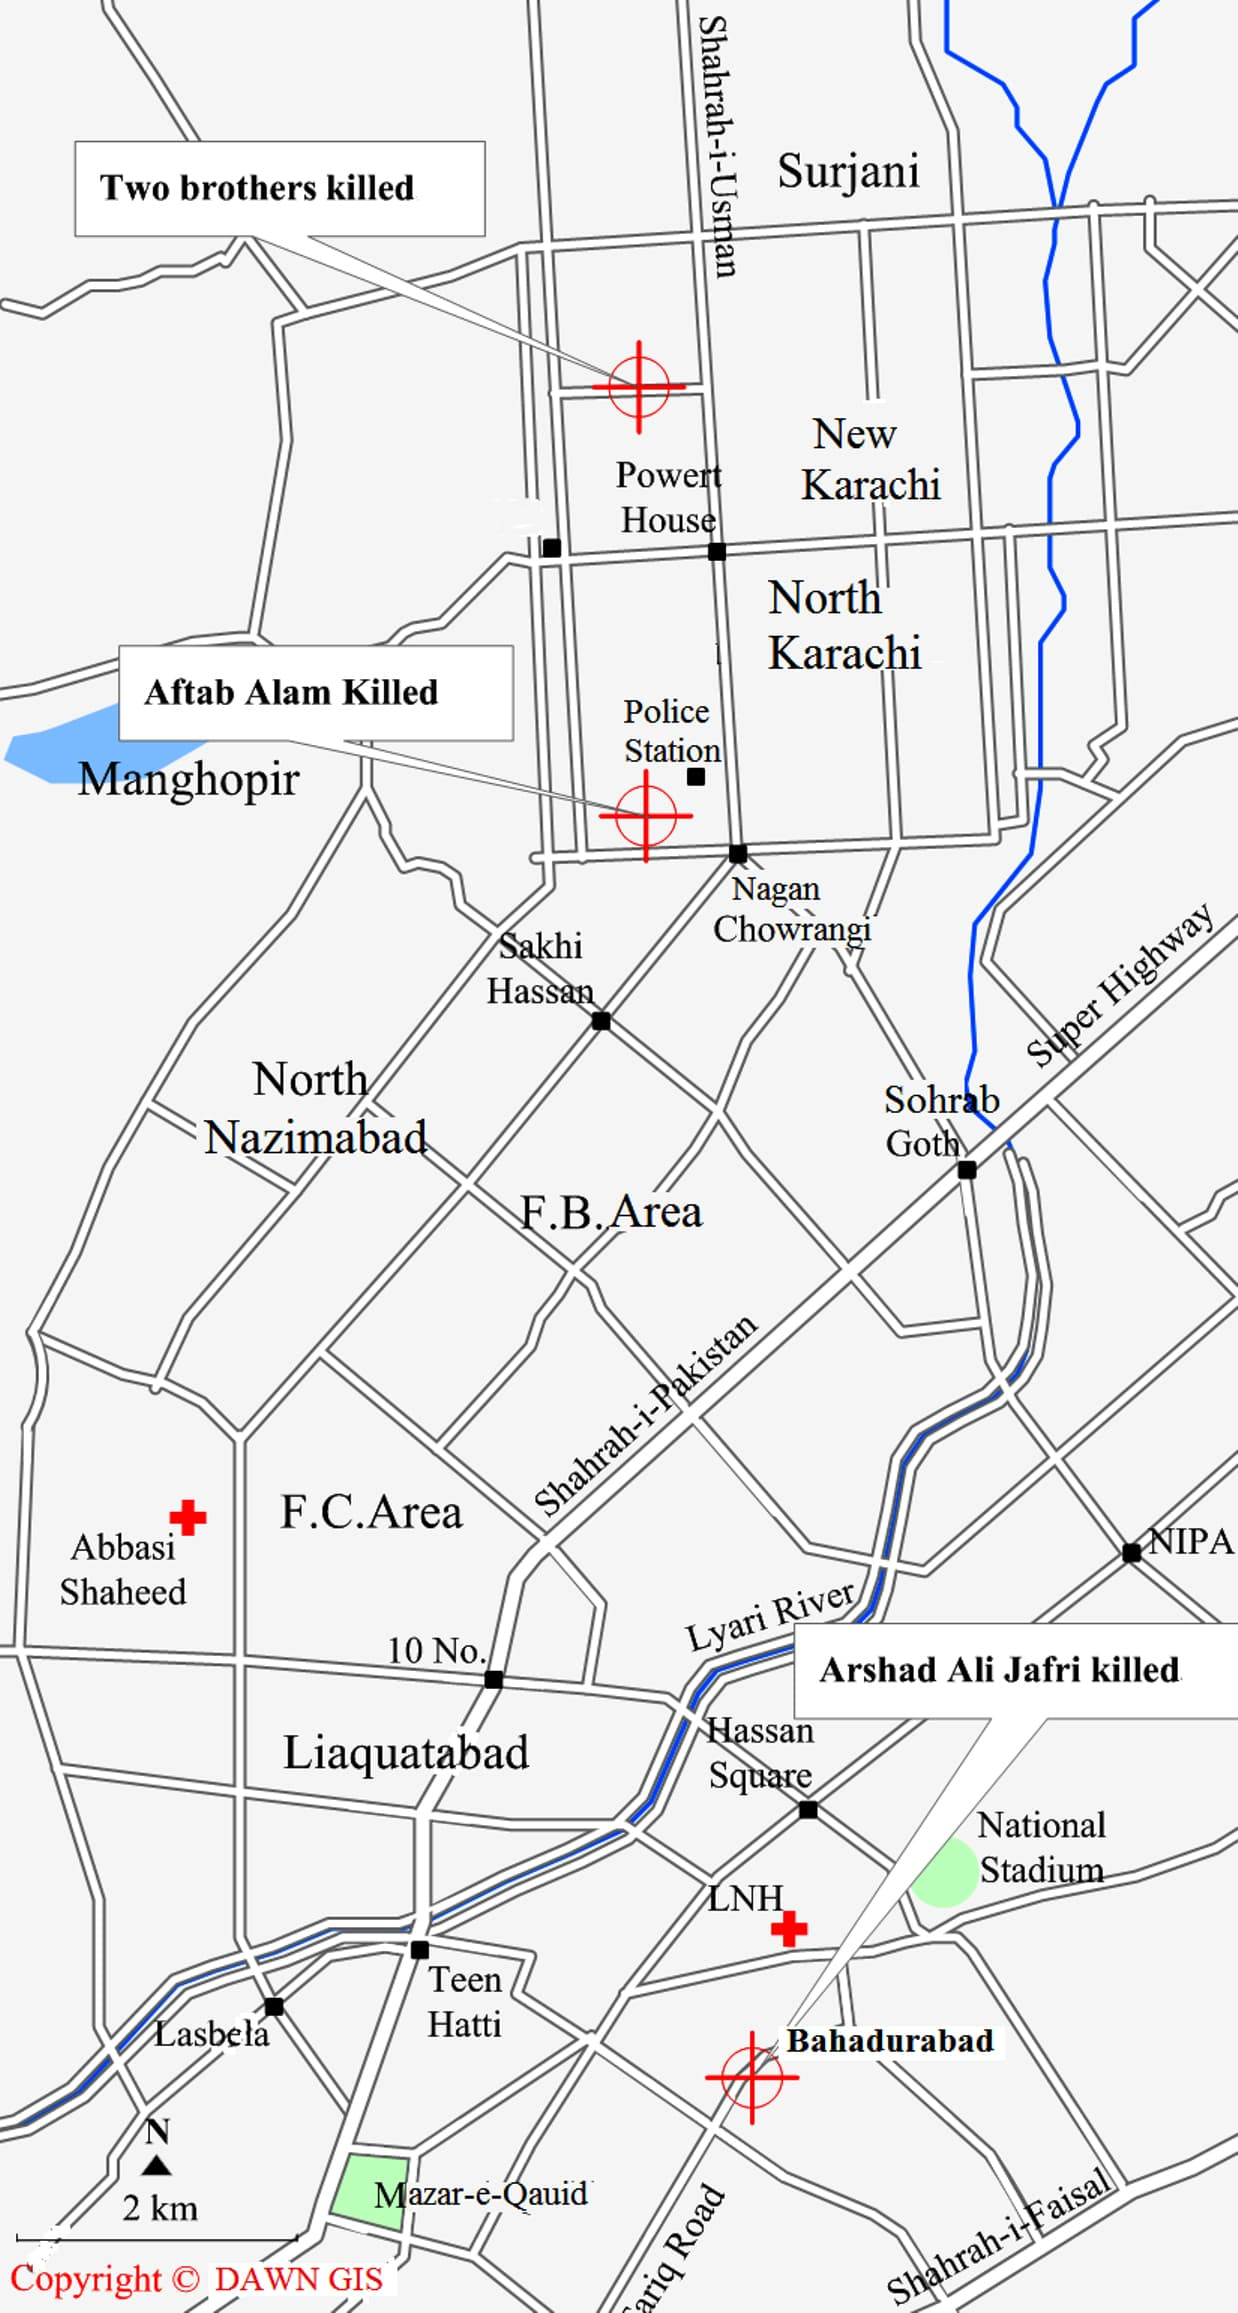 Location map for violence during last 36 hours in District Central of Karachi.